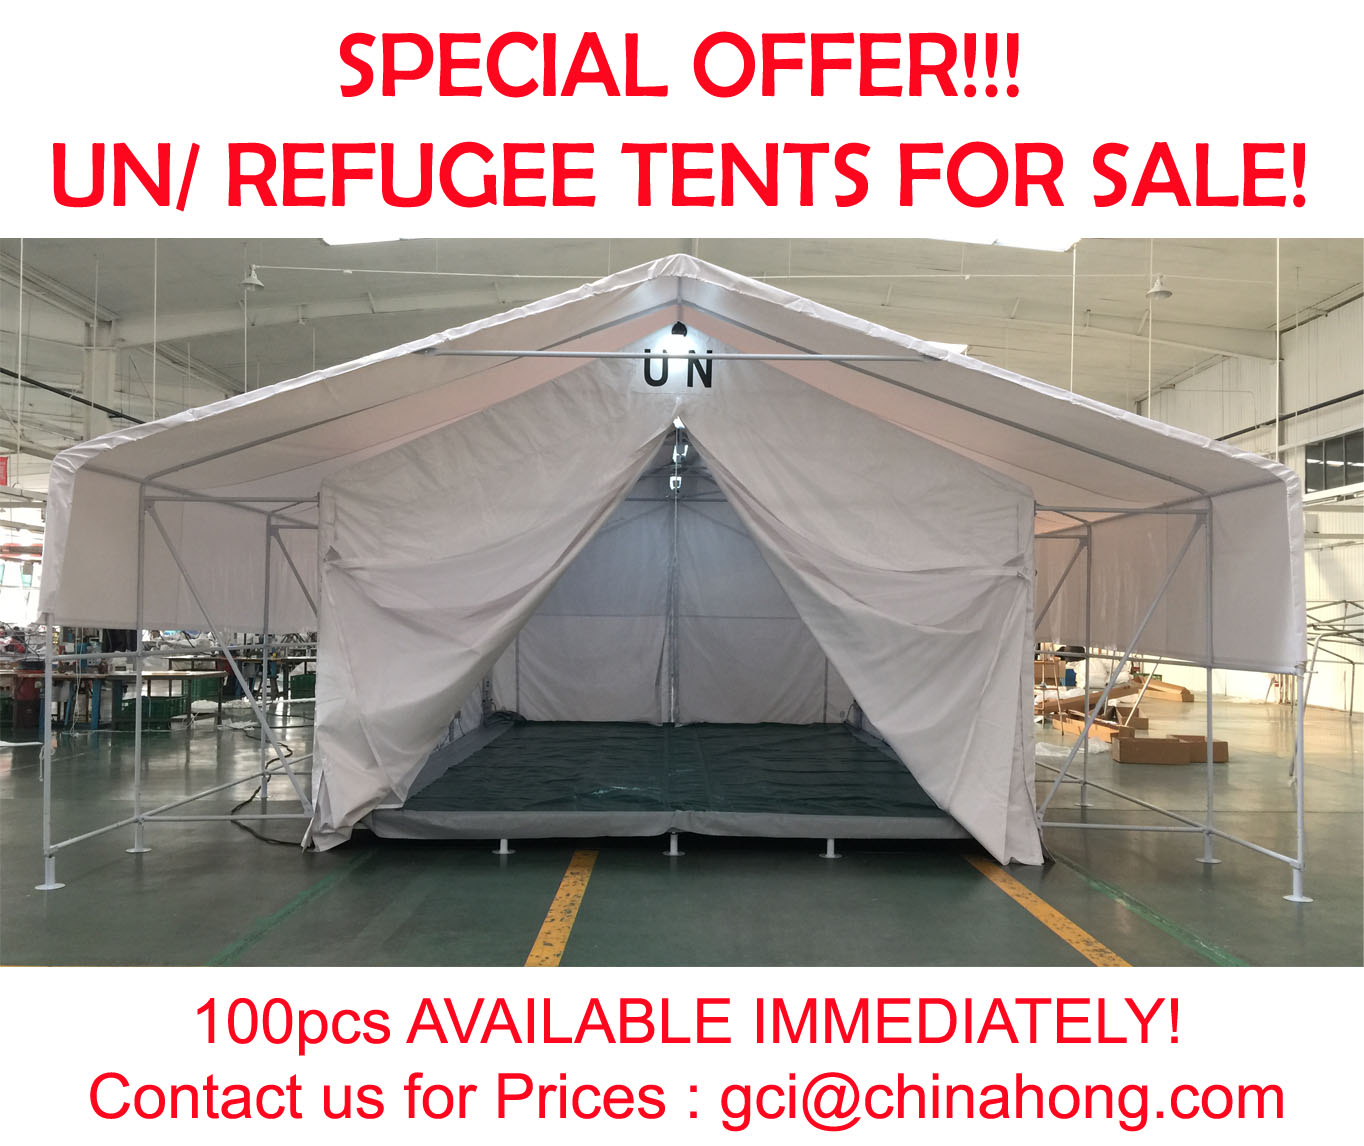 UN-Tents-refugee-tents-new-1